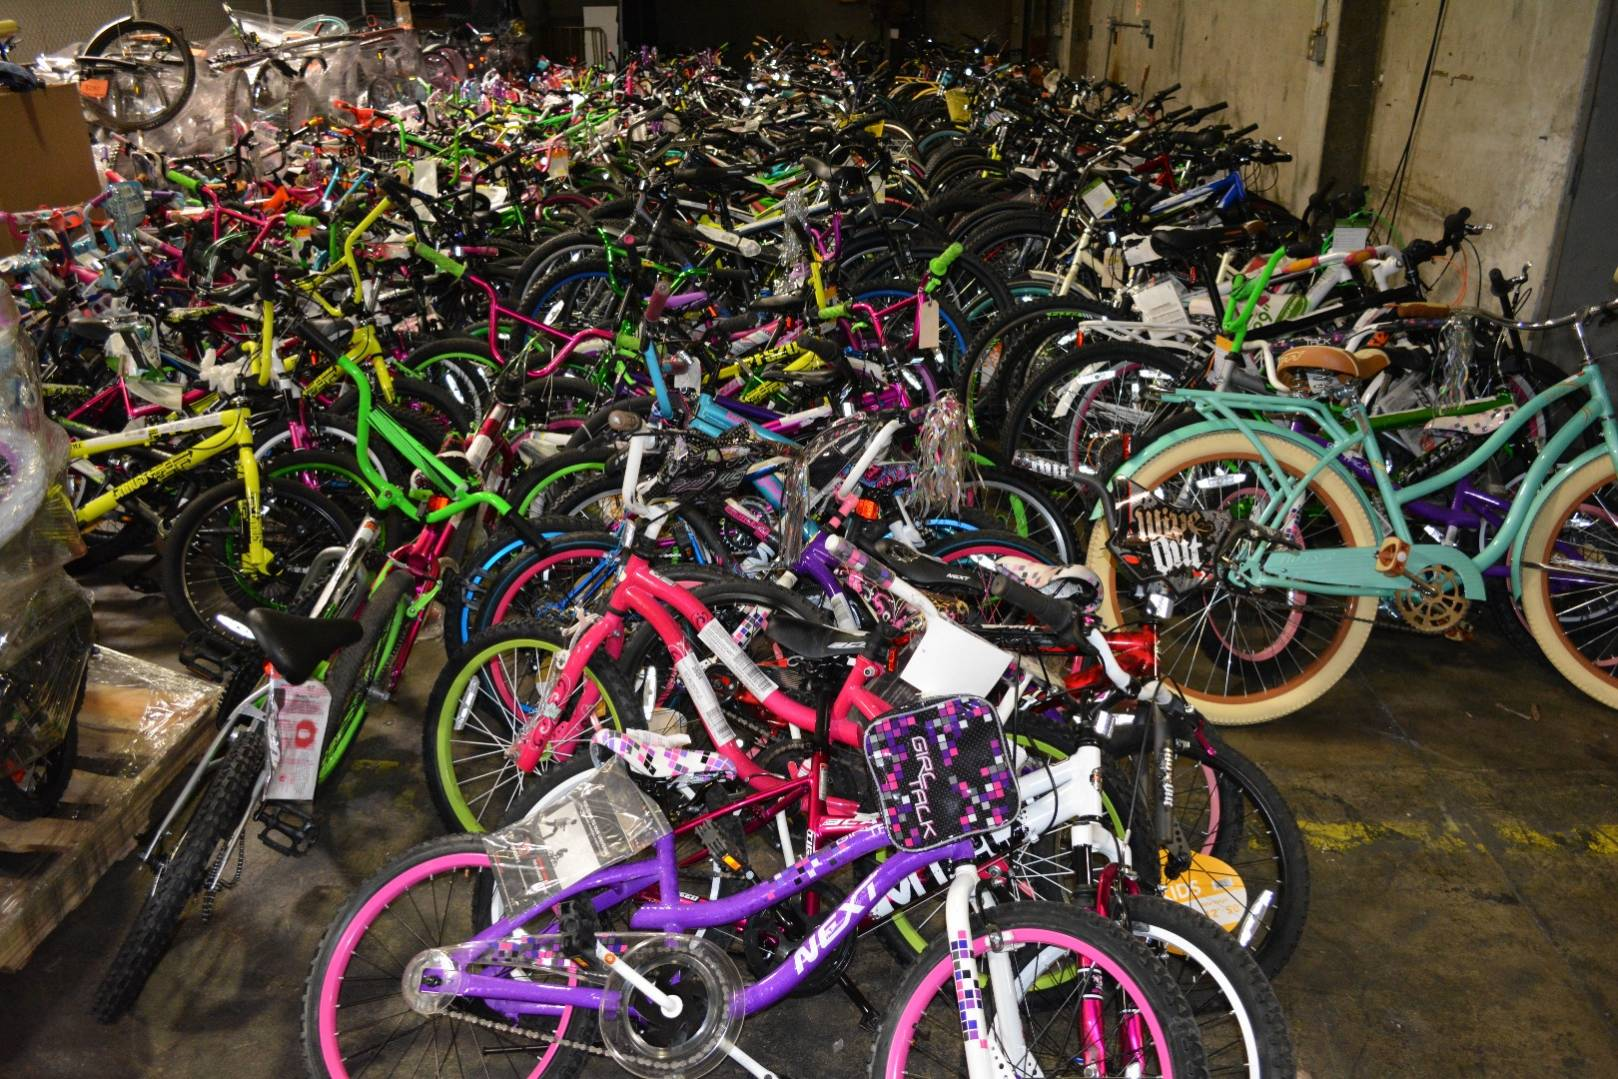 Wholesale Used Bicycles - Used Bikes Wholesaler